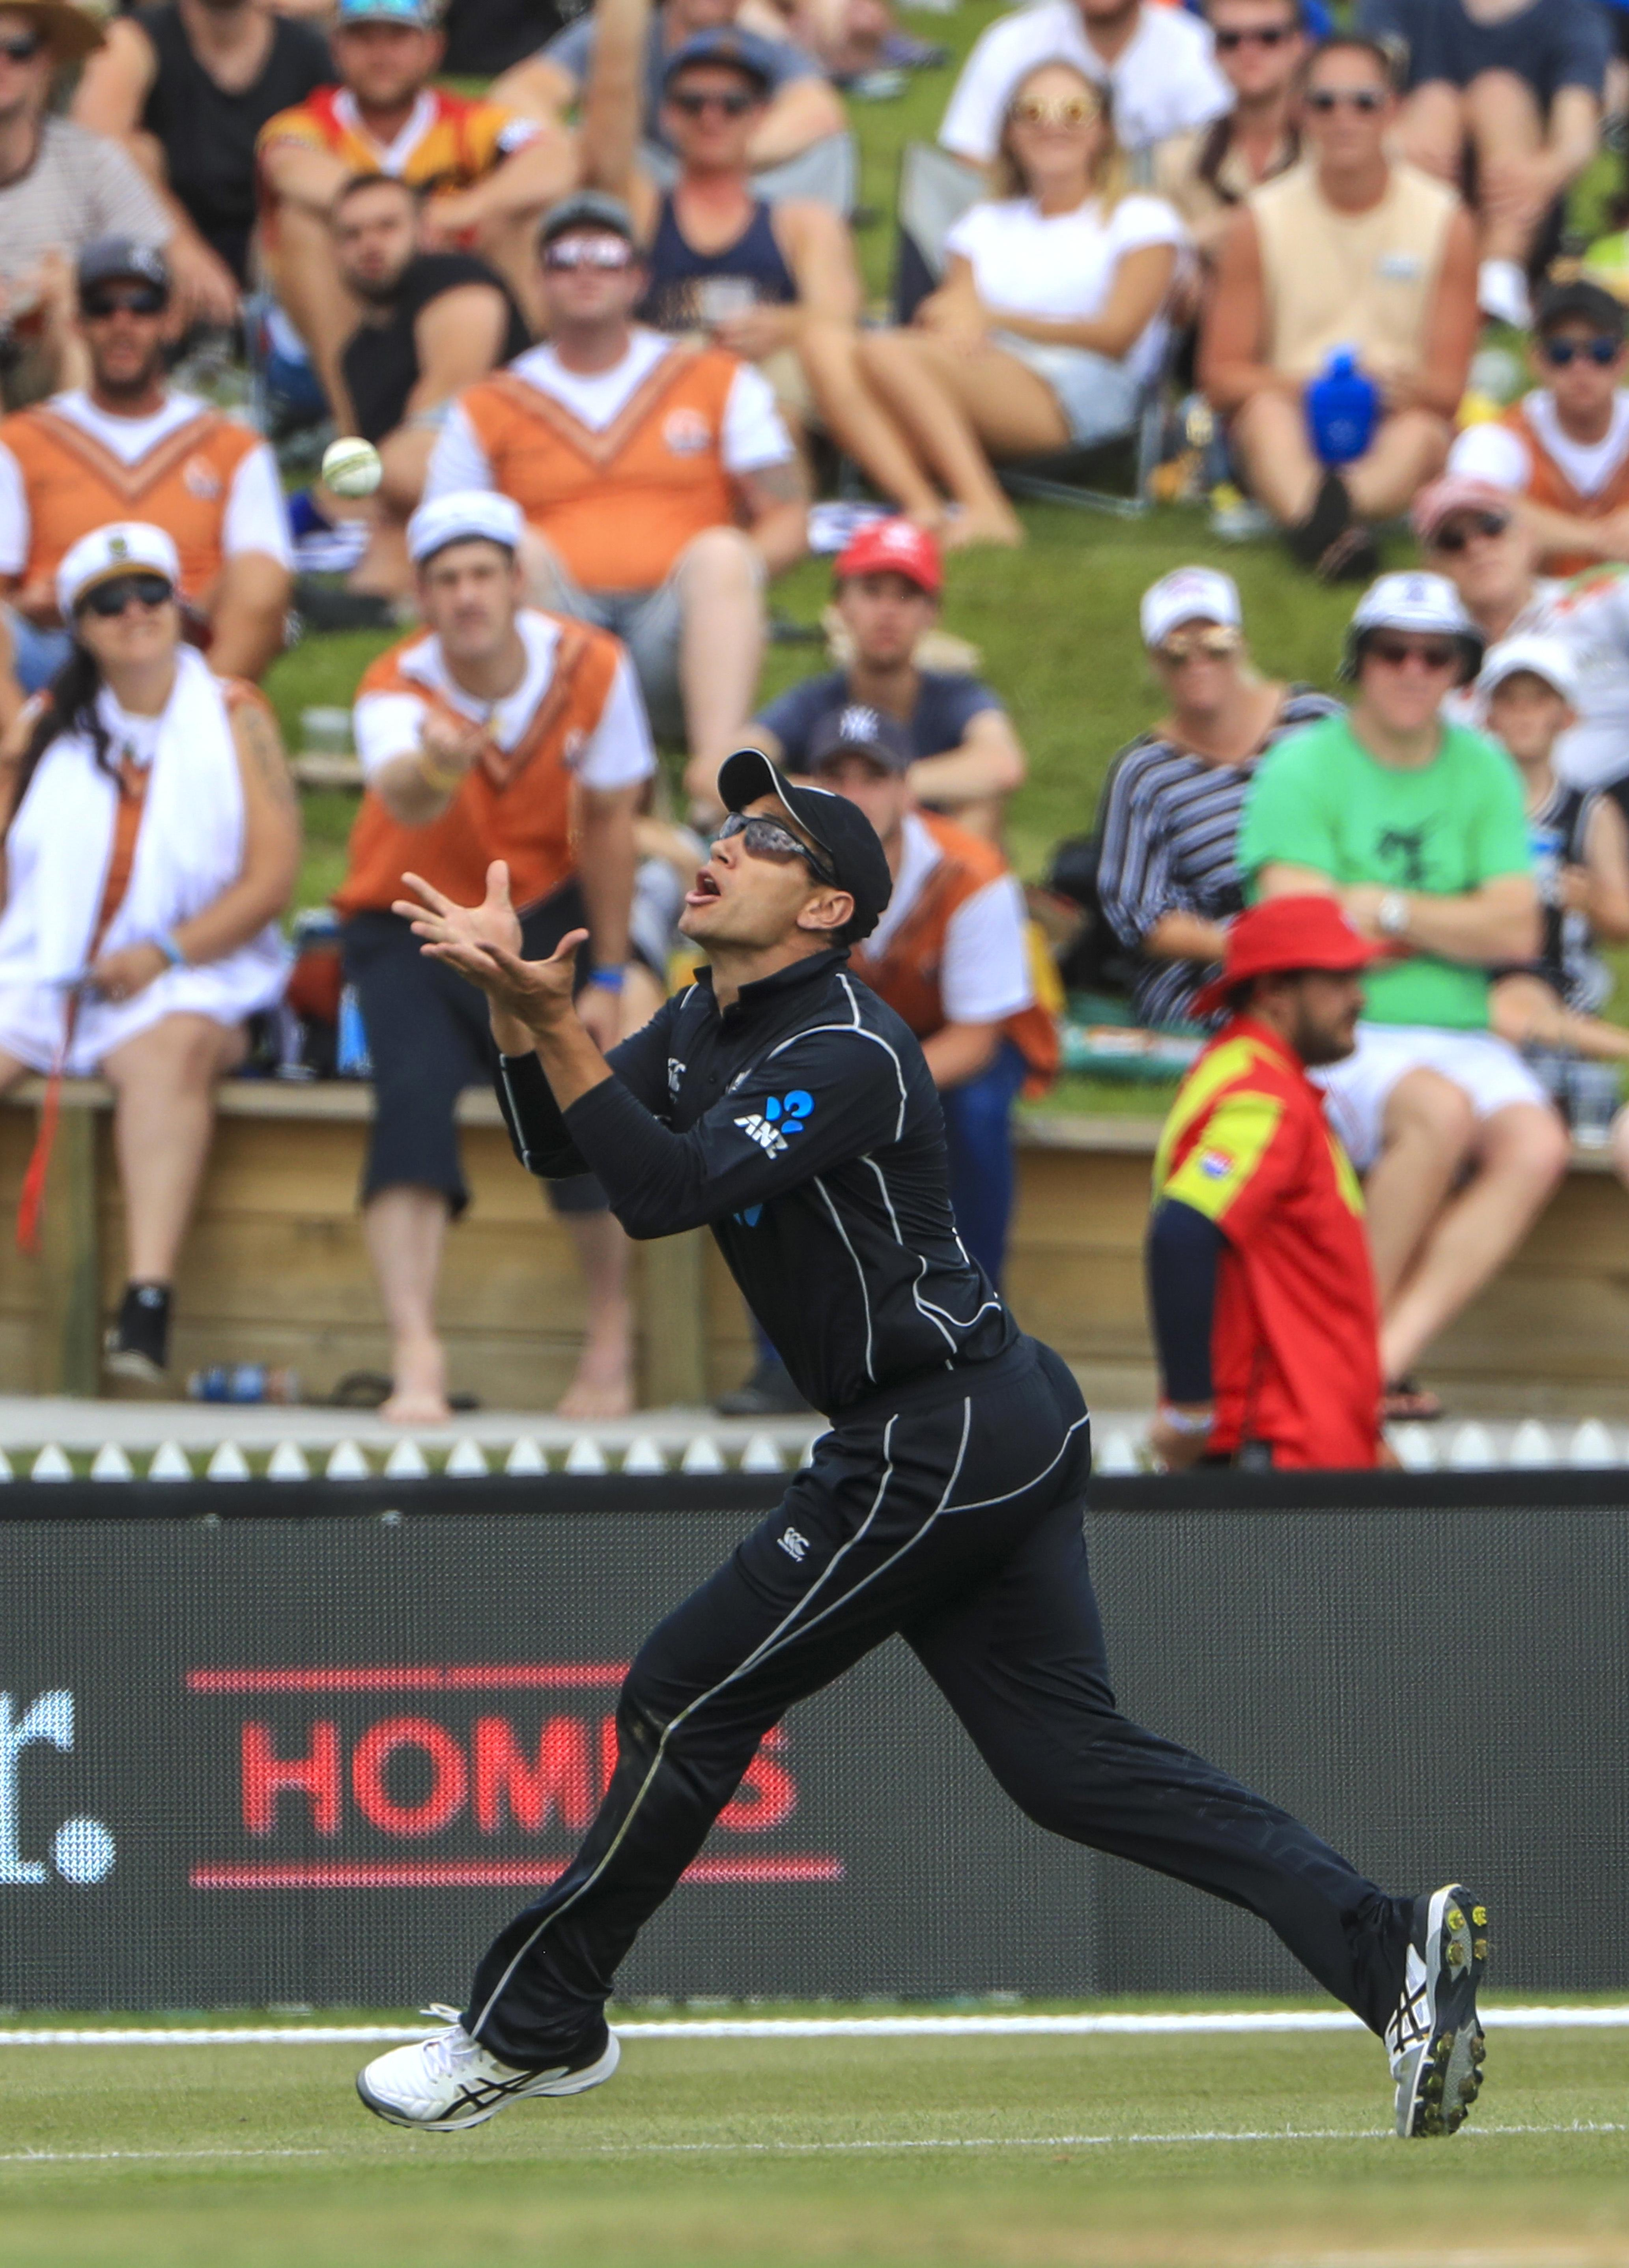 Ross Taylor keeps a close eye on the ball as he makes the catch from Ben Stokes' shot